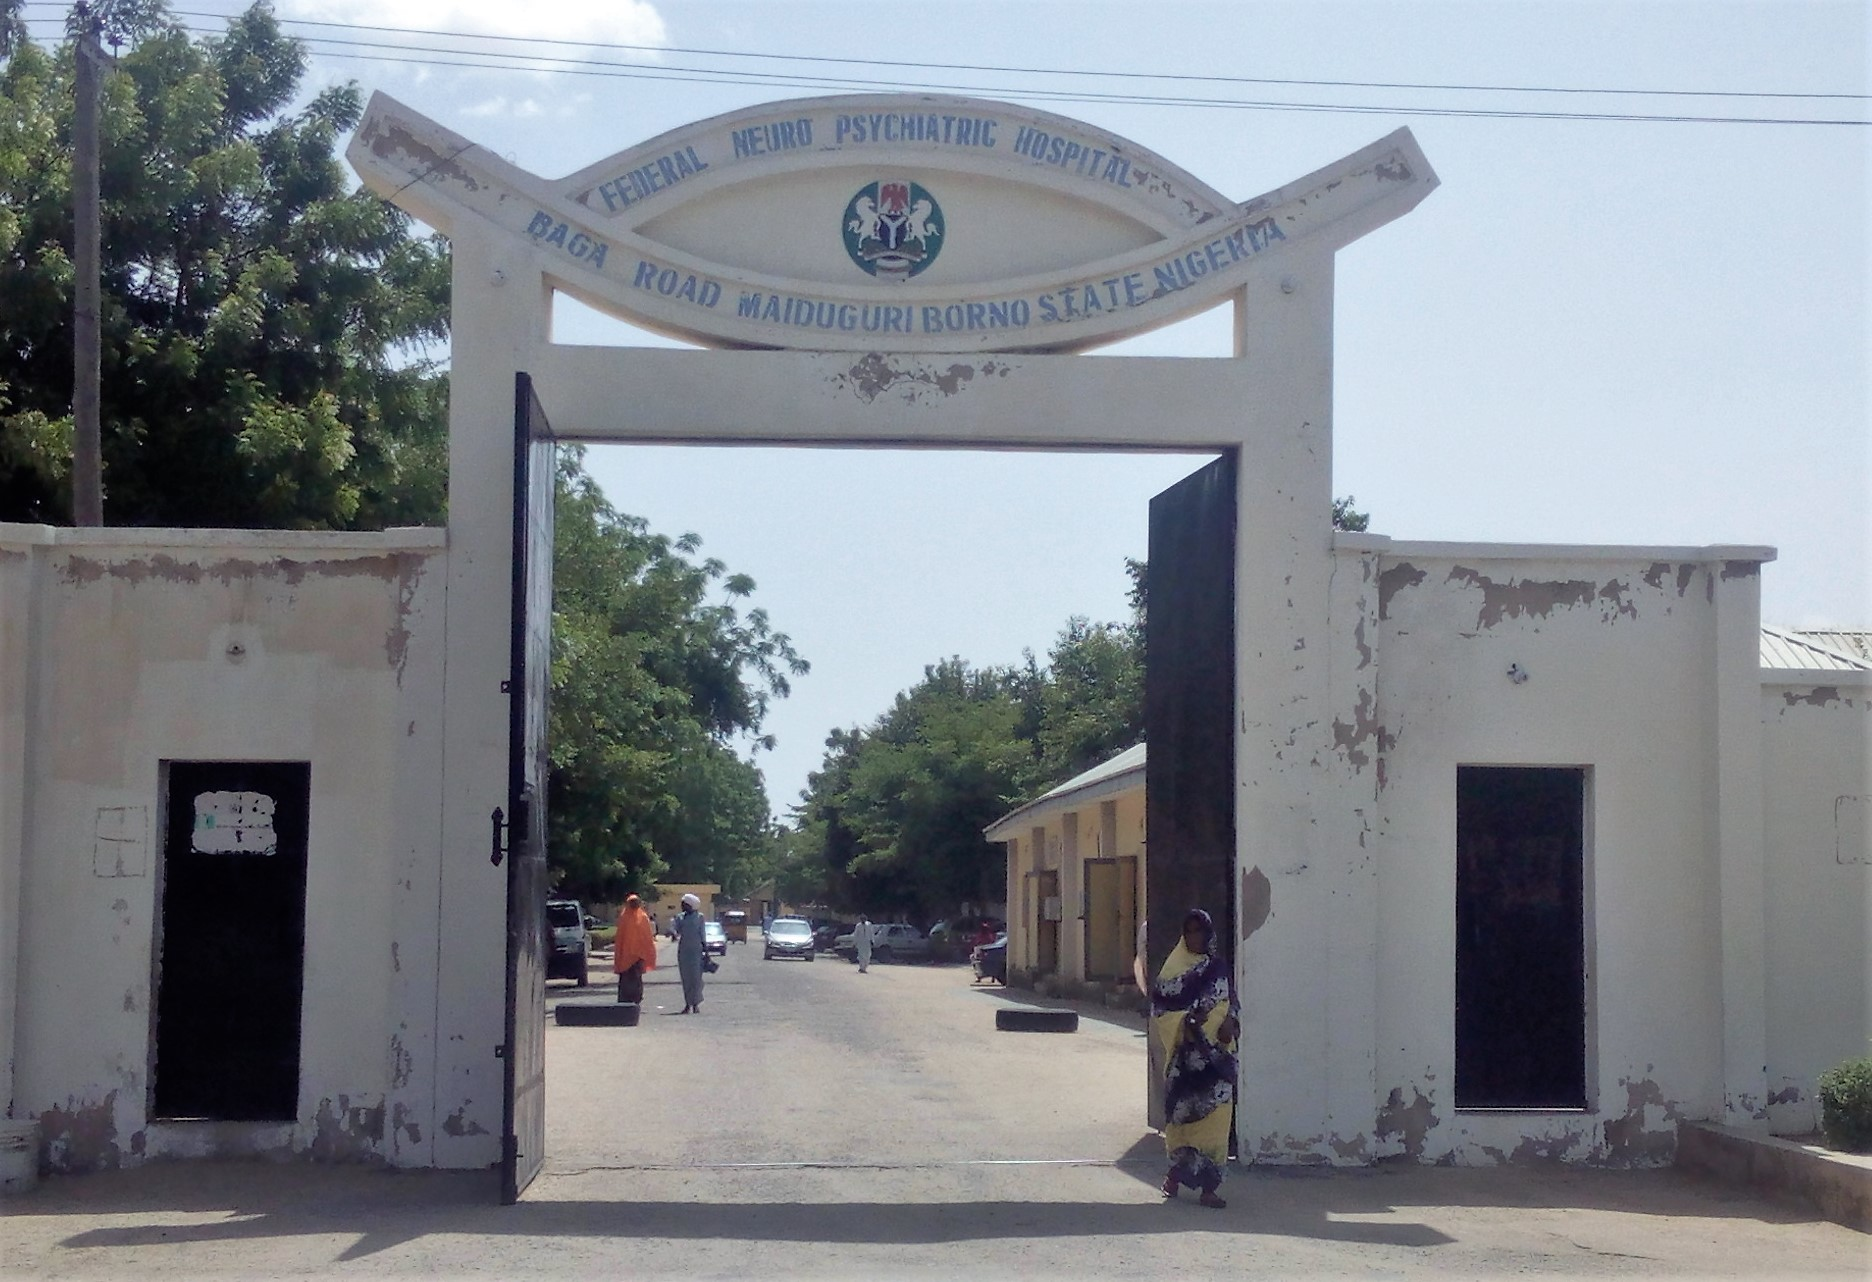 The Federal Neuropsychiatric Hospital in Maiduguri